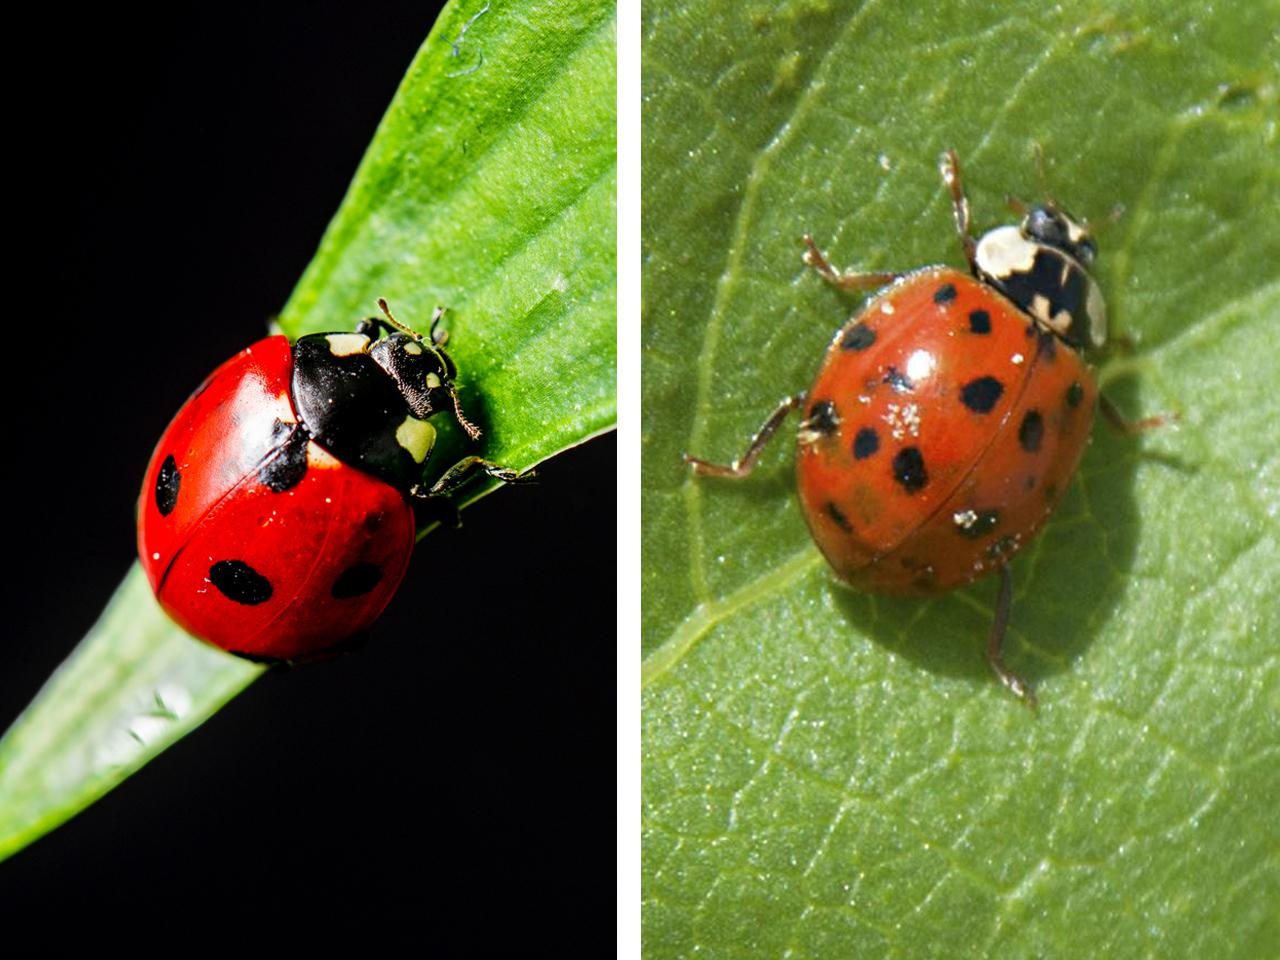 Close-up photos showing a side-by-side comparison of a red ladybug with black spots on a green leaf and an orange Asian lady beetle on a green leaf. (Photos by Canstock and MSU Extension Service)